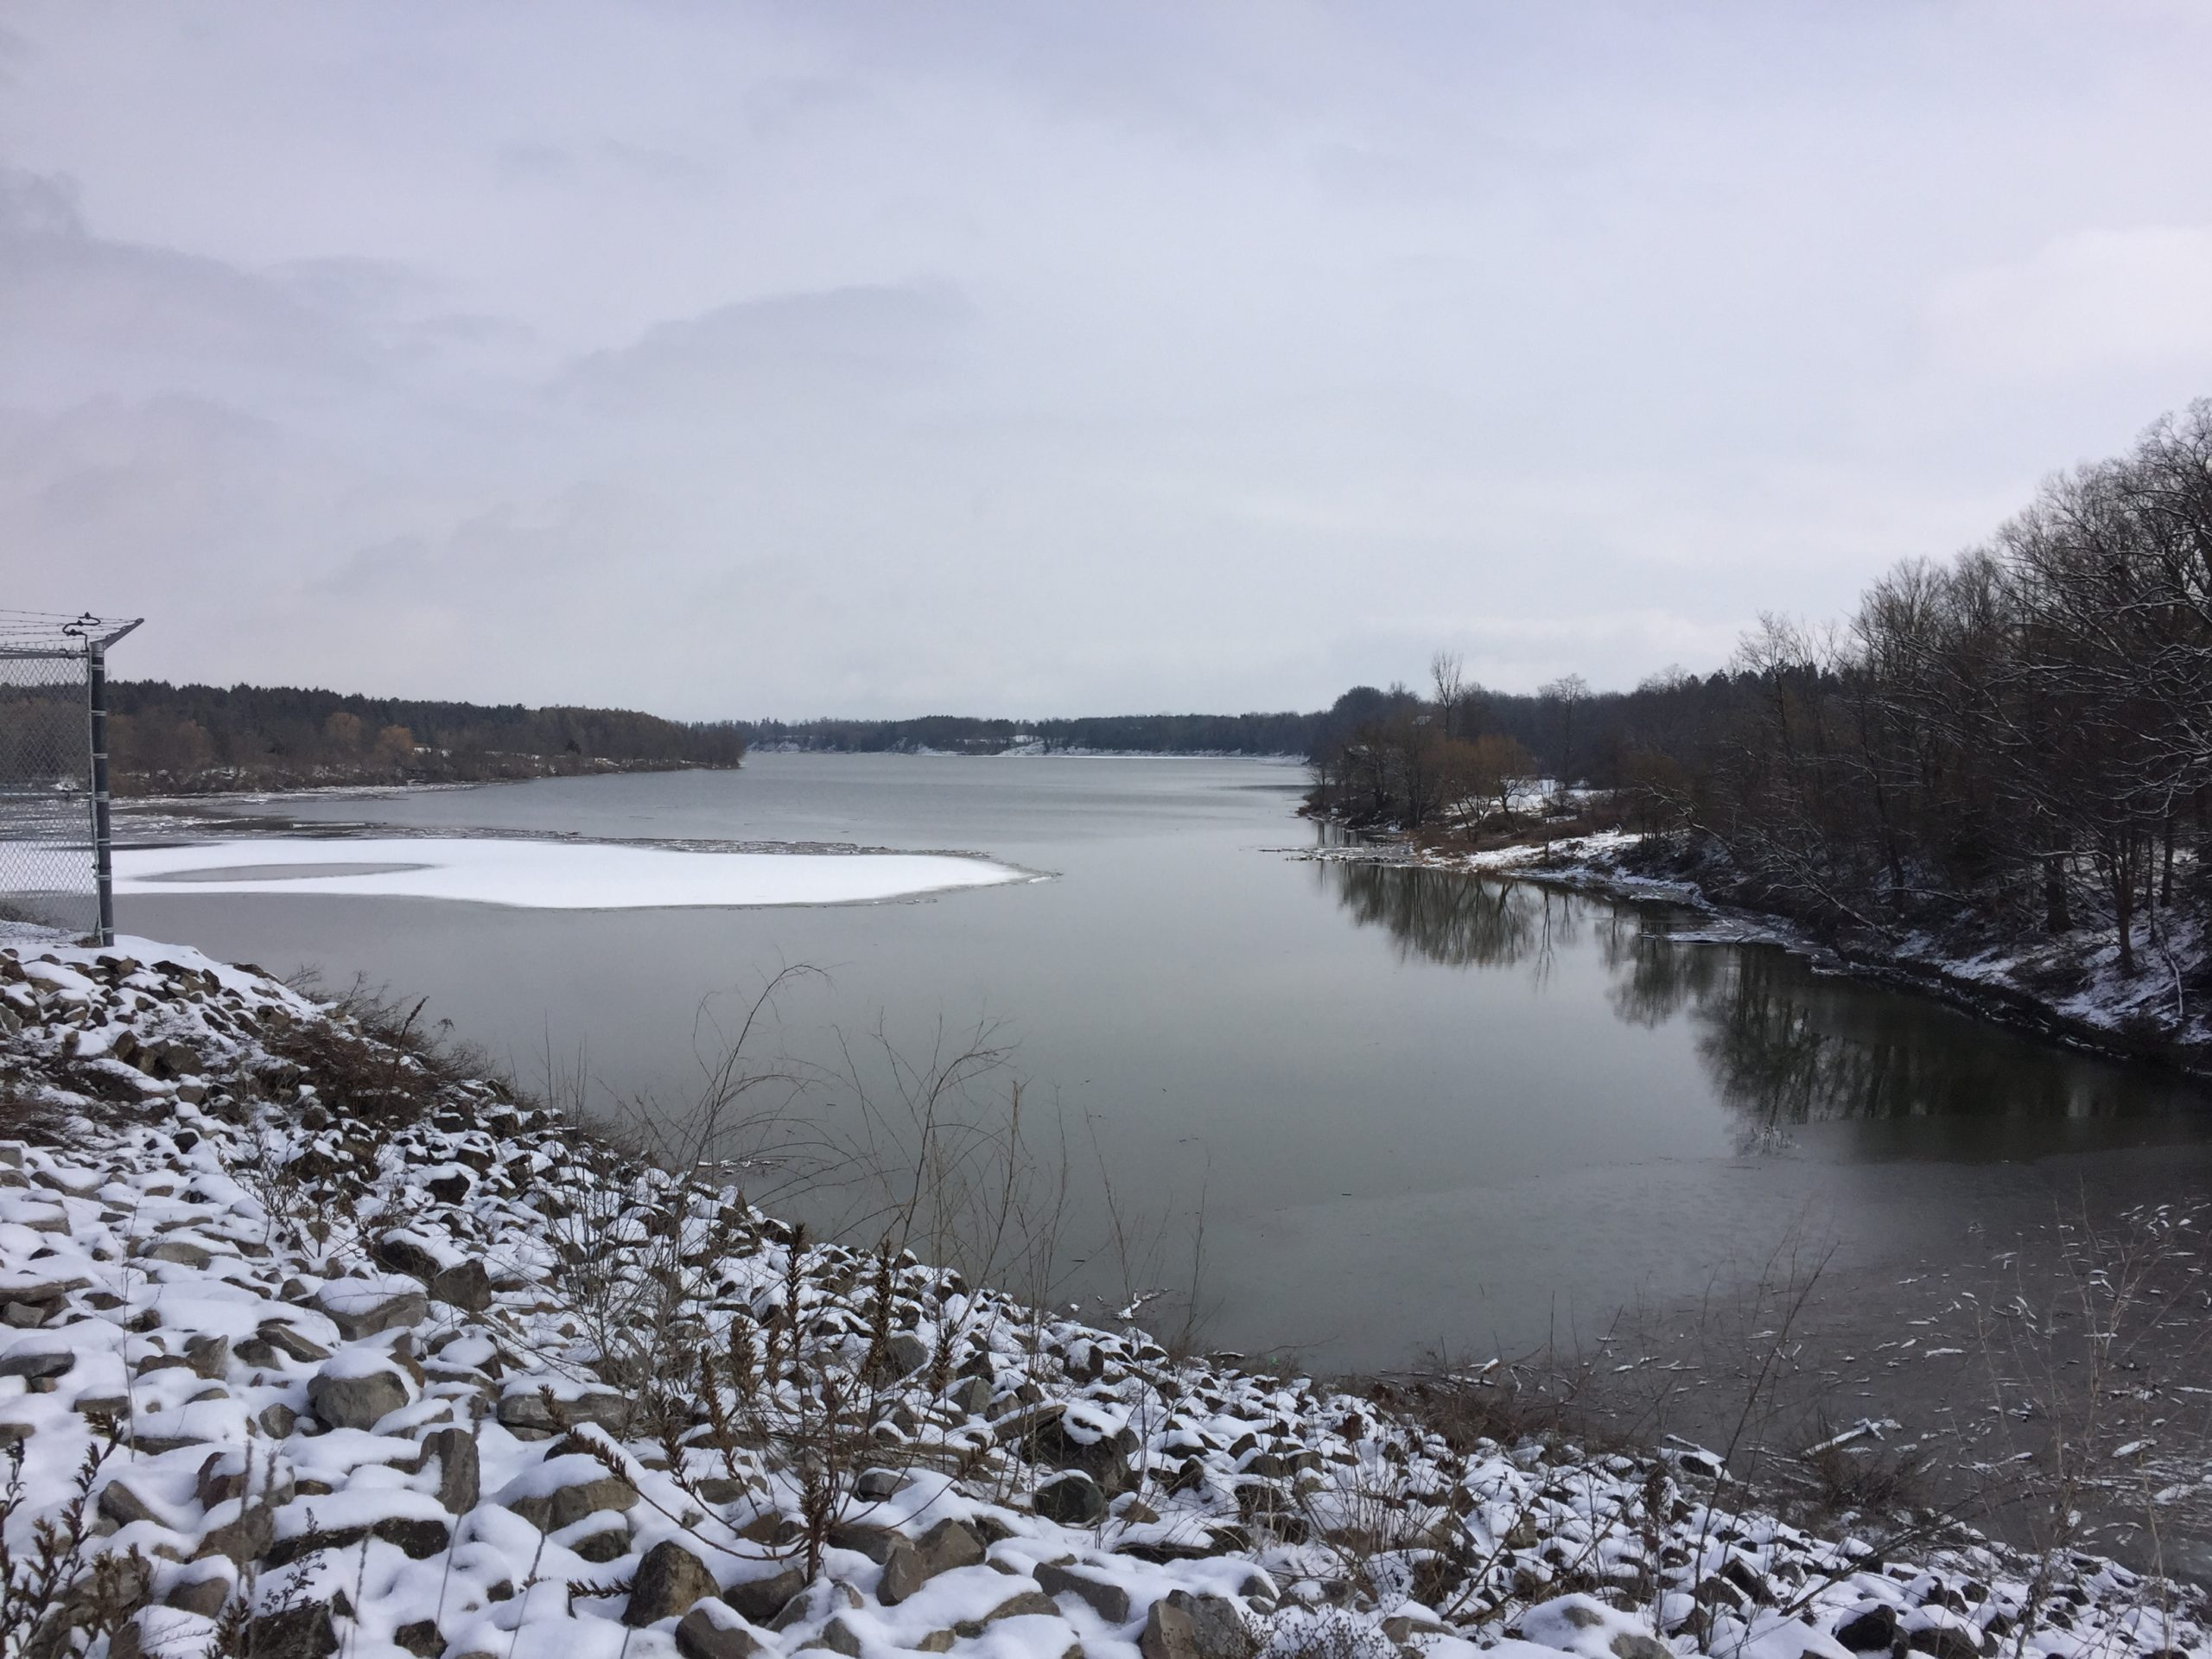 River safety education is  important in wake of 2018's tumultuous winter